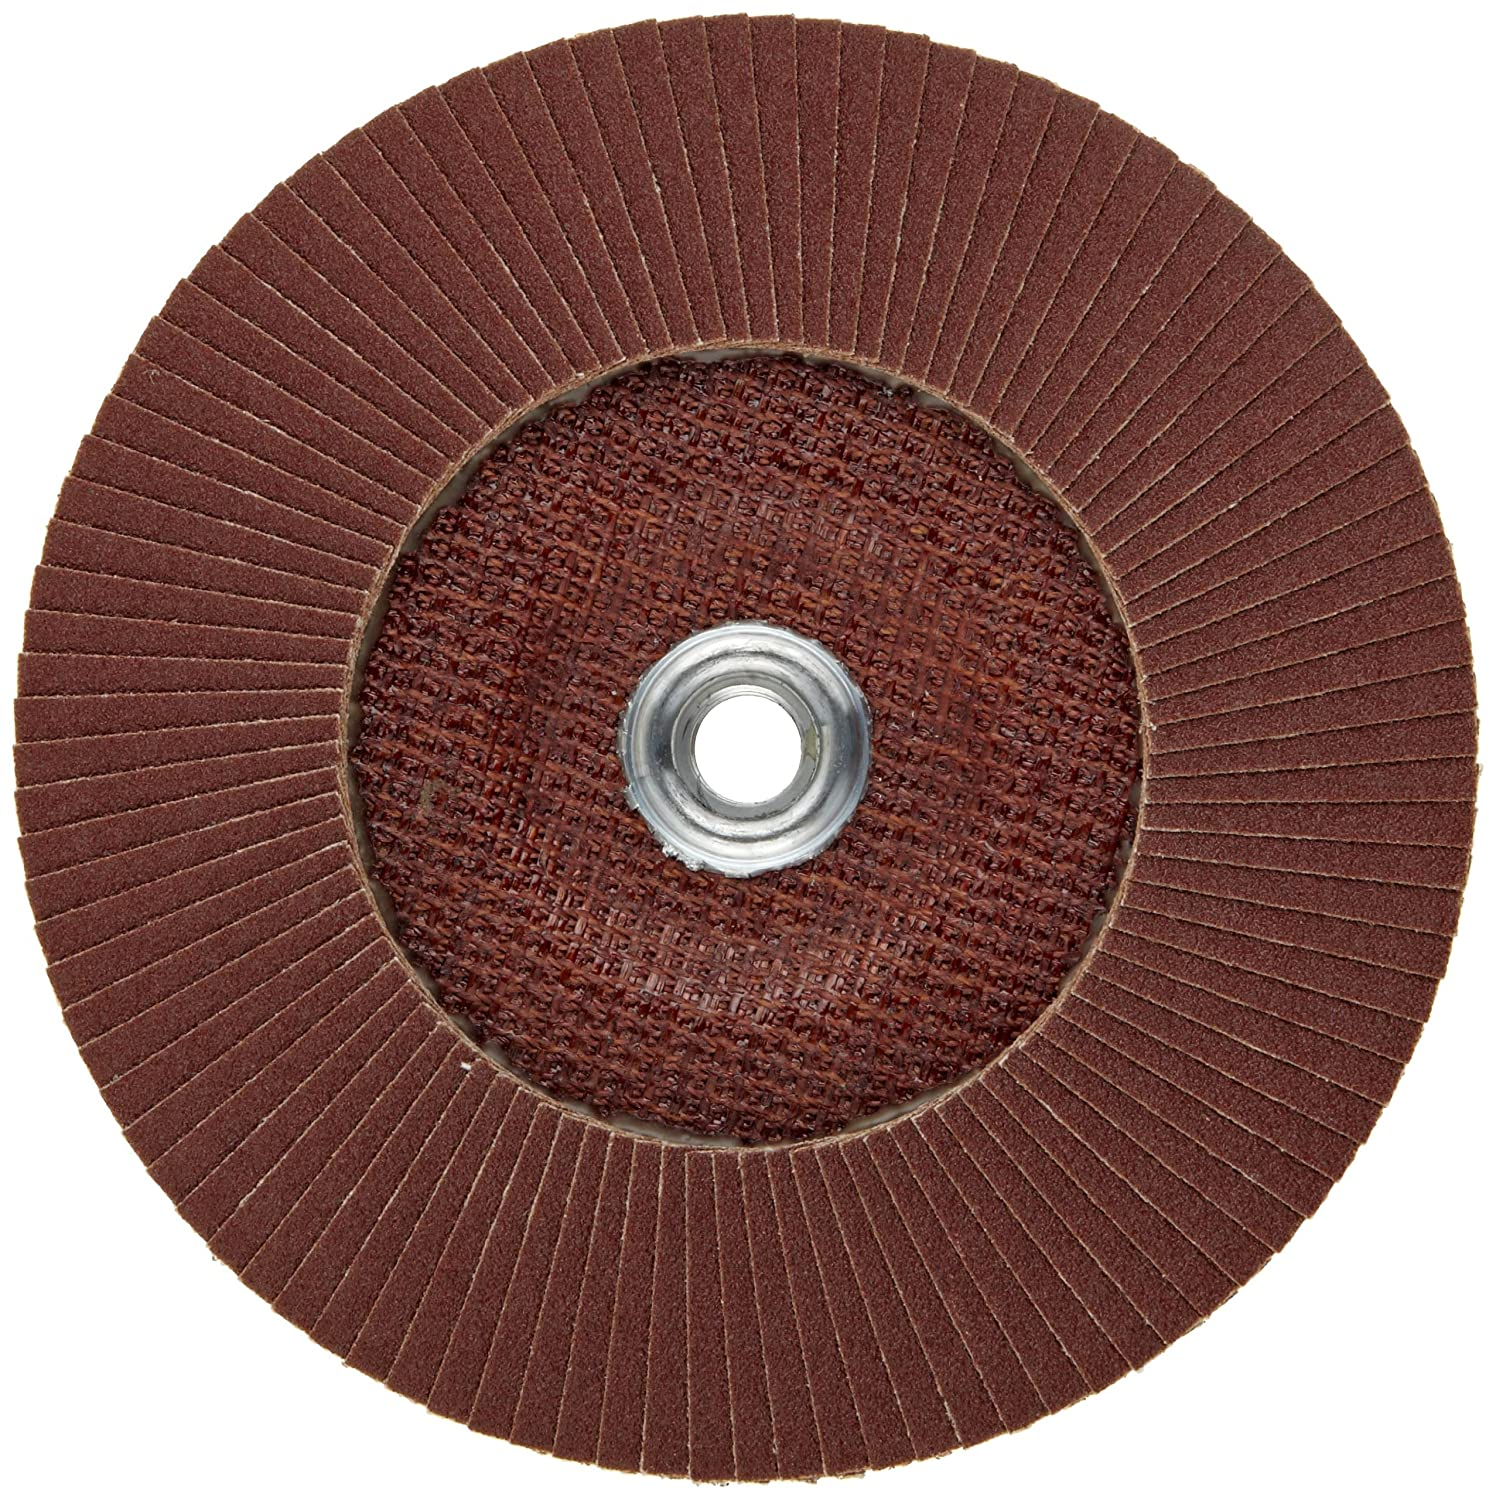 Type 27 7 Dia. Threaded Hole Pack of 1 60 Grit PFERD Polifan PSF Abrasive Flap Disc Phenolic Resin Backing Aluminum Oxide